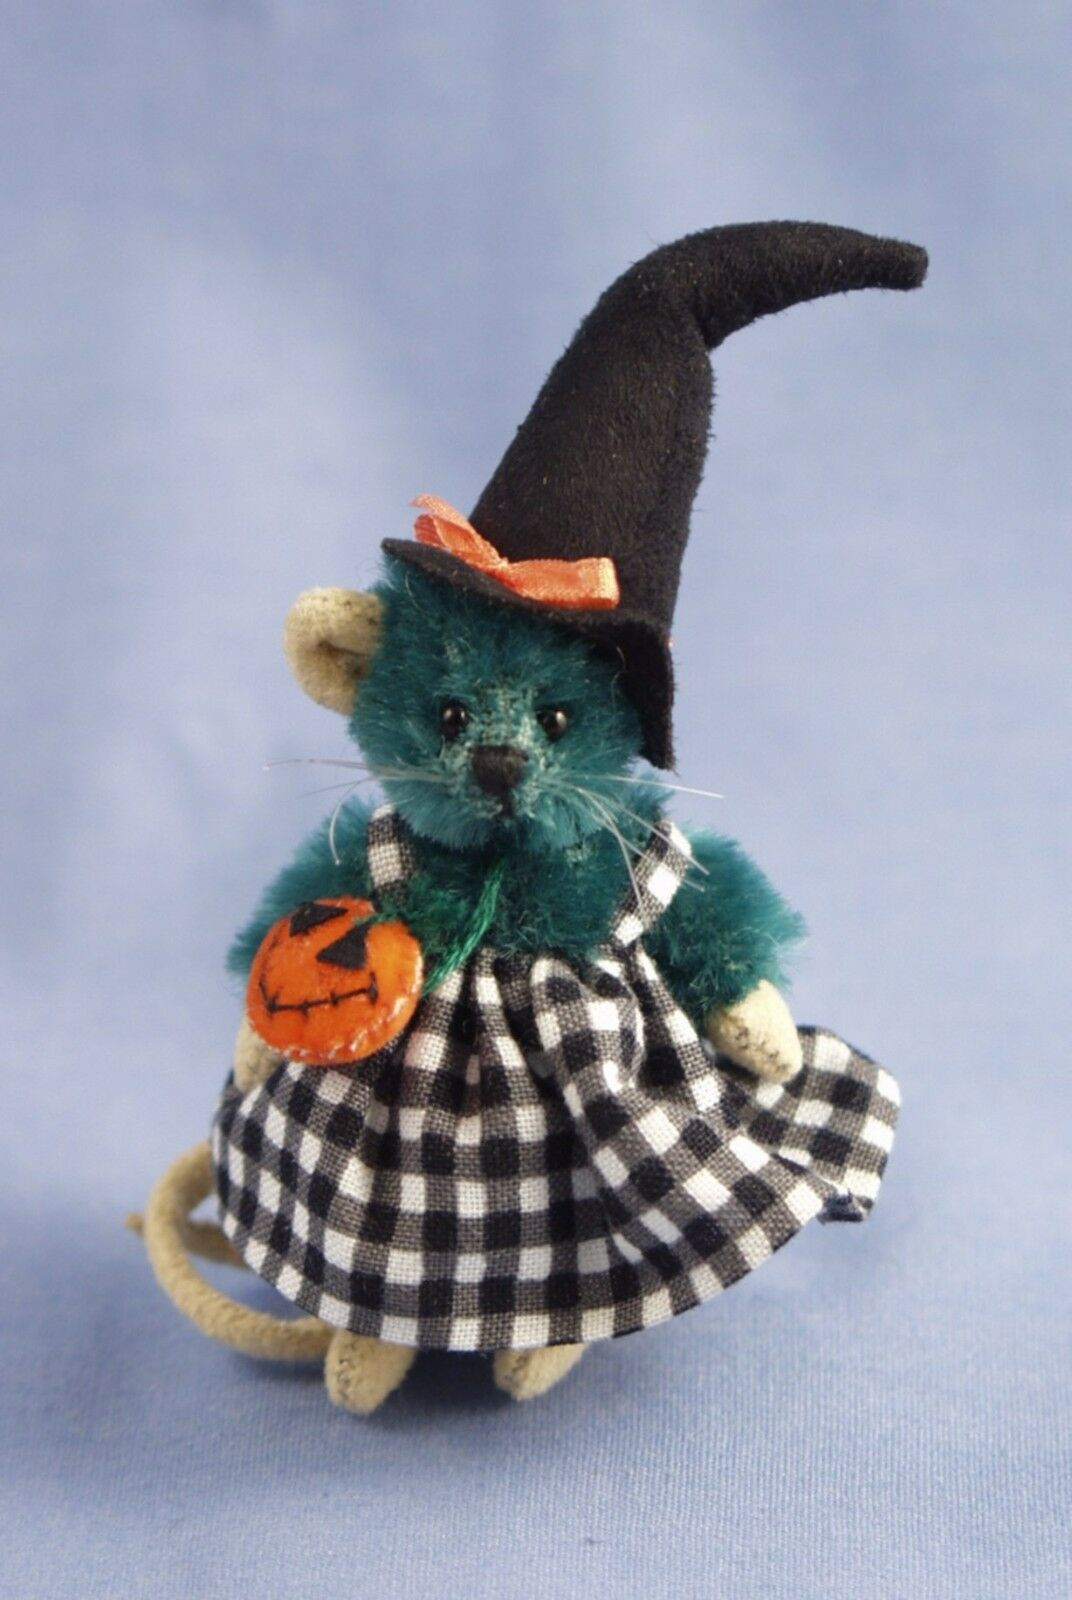 DEB CANHAM    WANDA    FROM THE PUMPKIN  COLLECTION